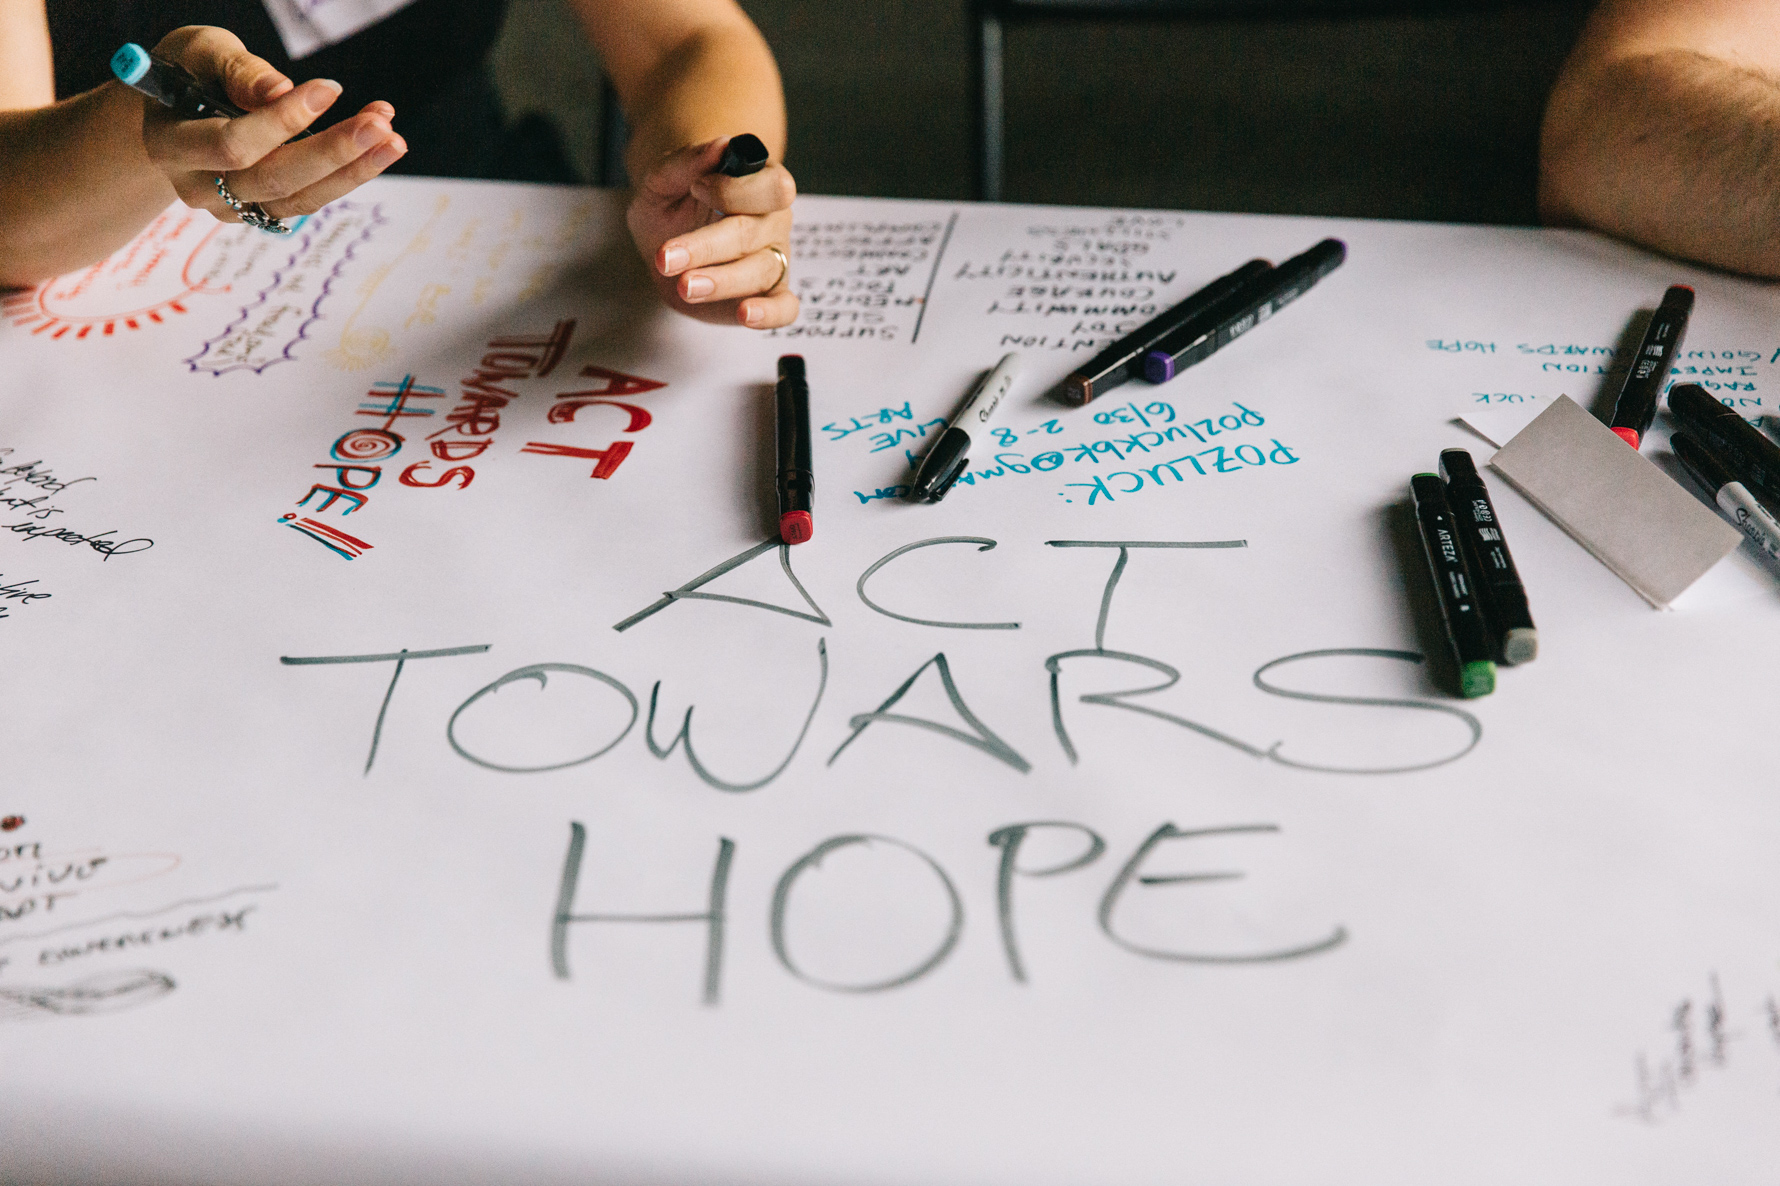 The words ACT TOWARD HOPE on a white piece of paper